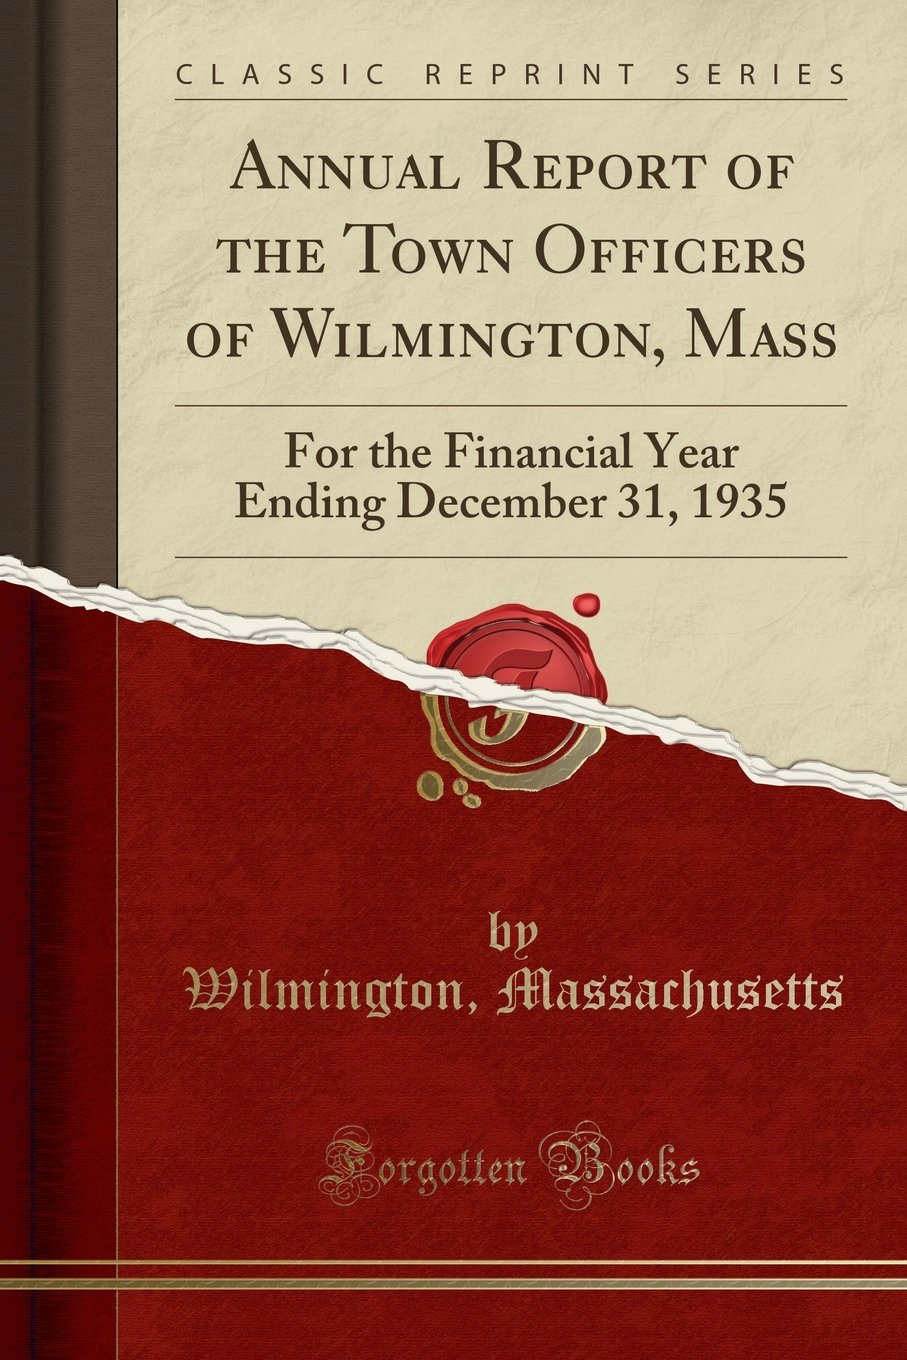 Annual Report of the Town Officers of Wilmington, Mass: For the Financial Year Ending December 31, 1935 (Classic Reprint) ebook